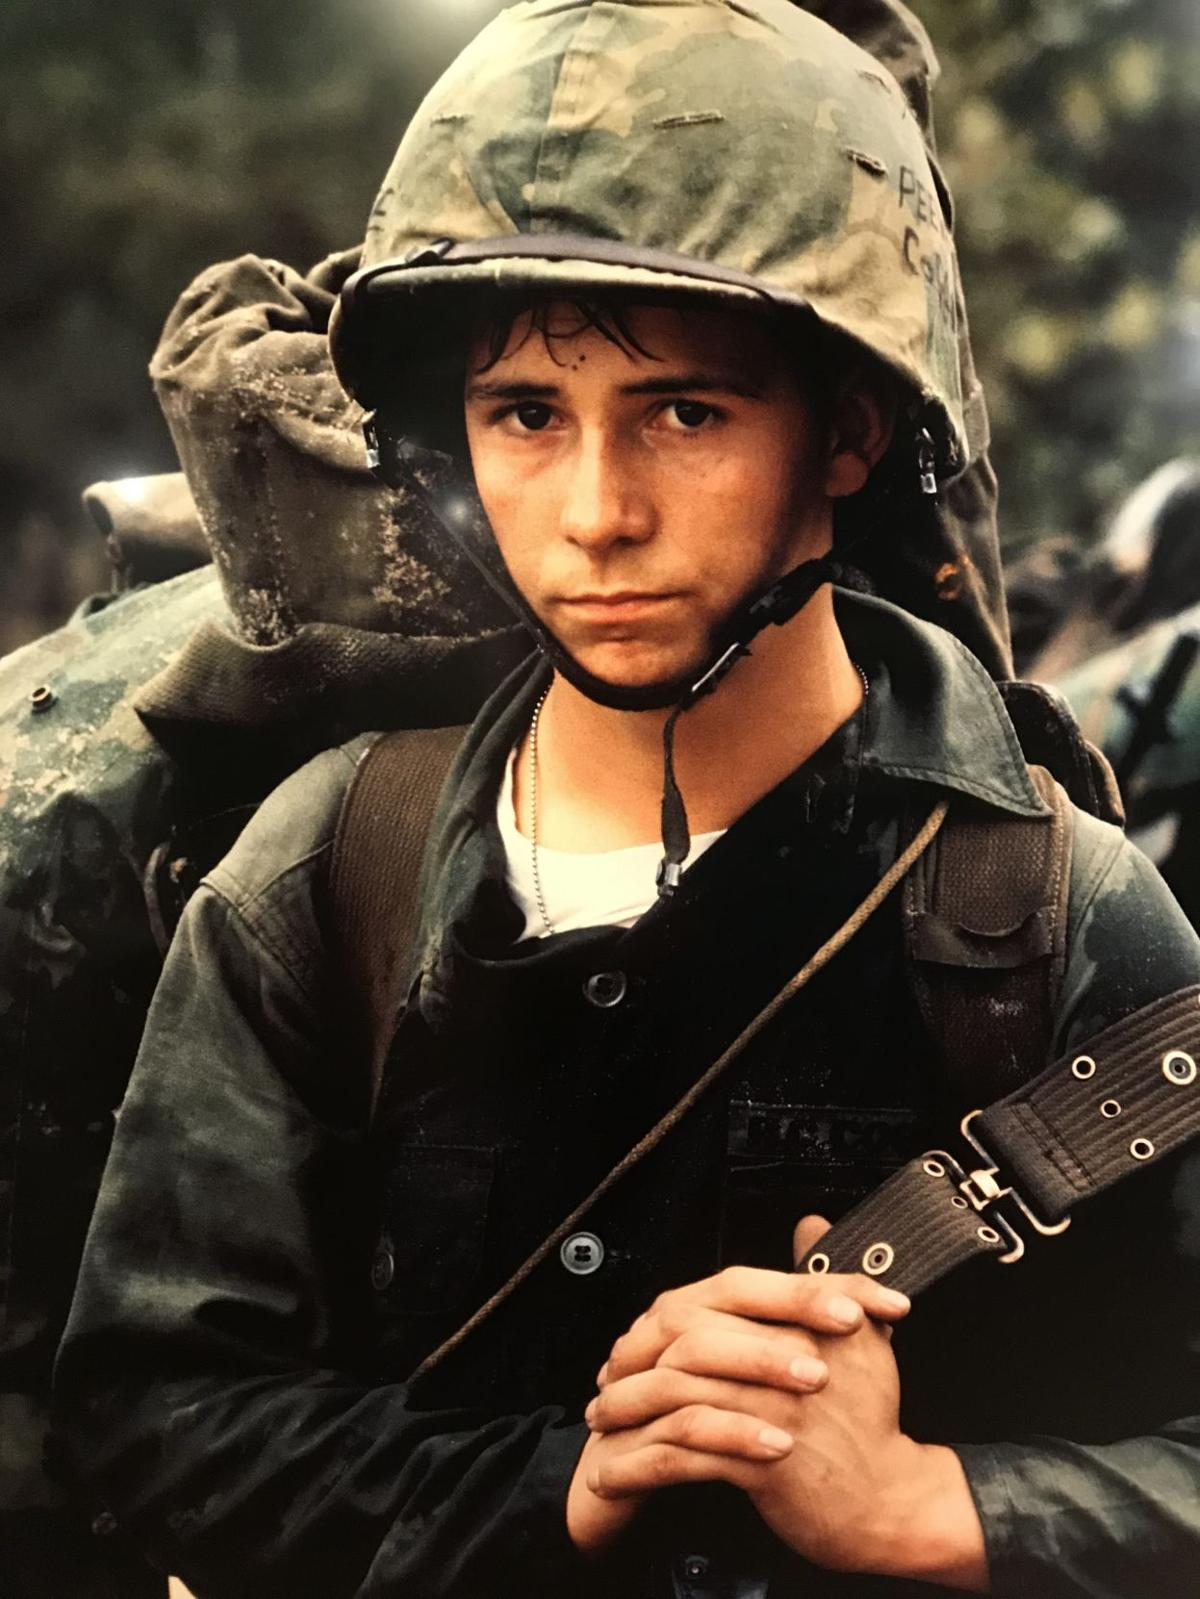 He was so young. They all were': 'Picturing Nam' shows America's ...